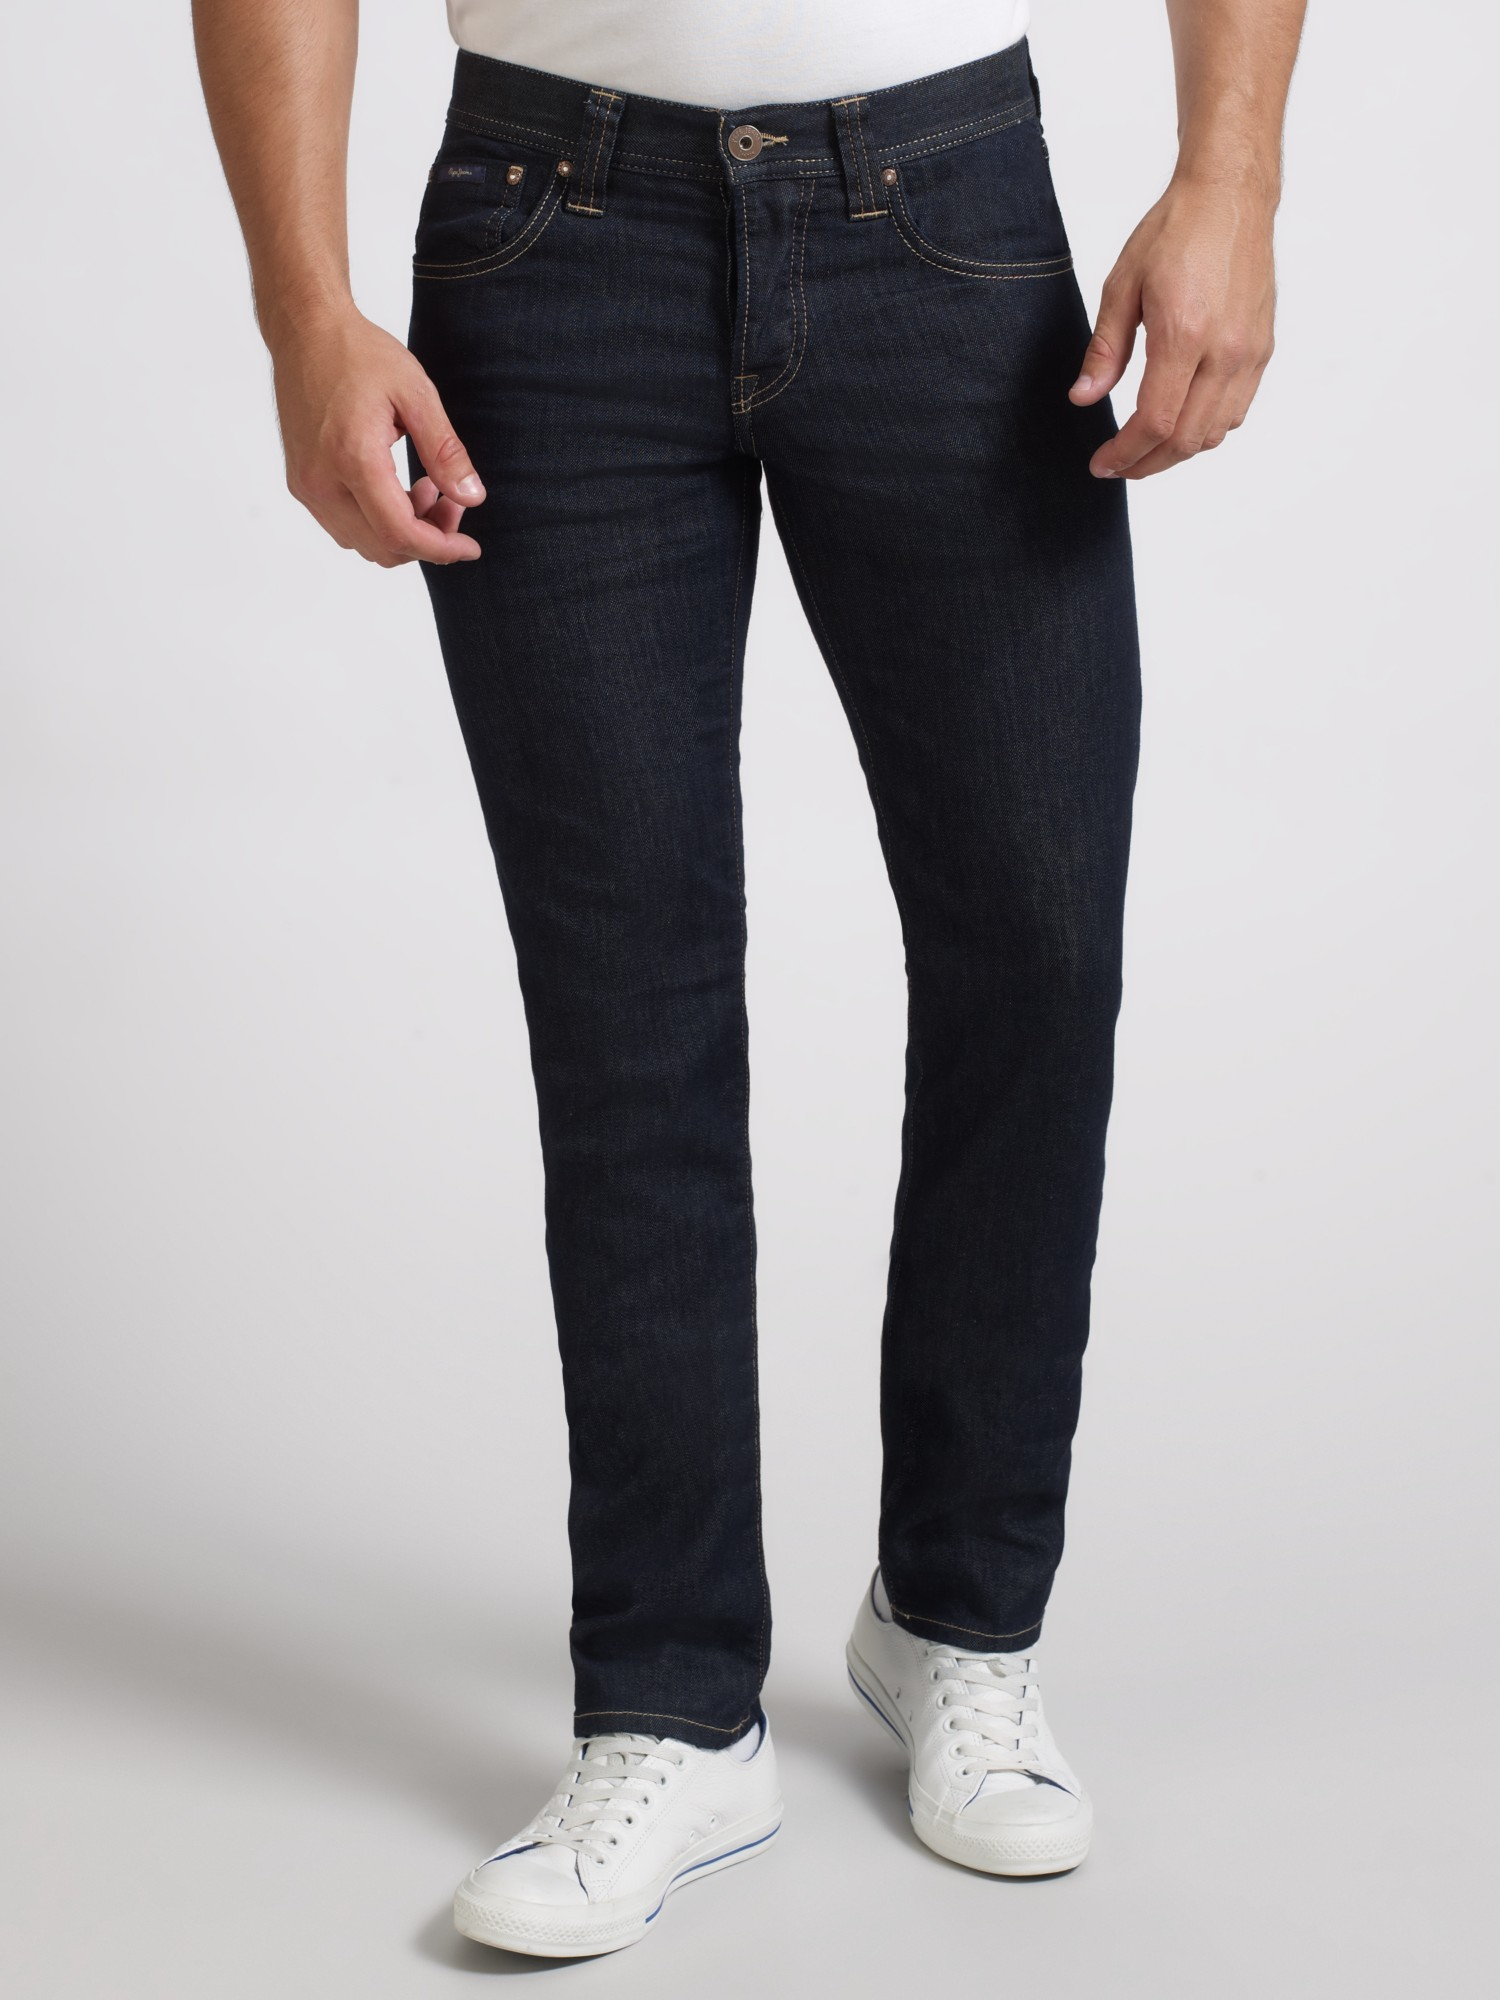 Pepe Jeans Cane Slim Jeans in Blue for Men